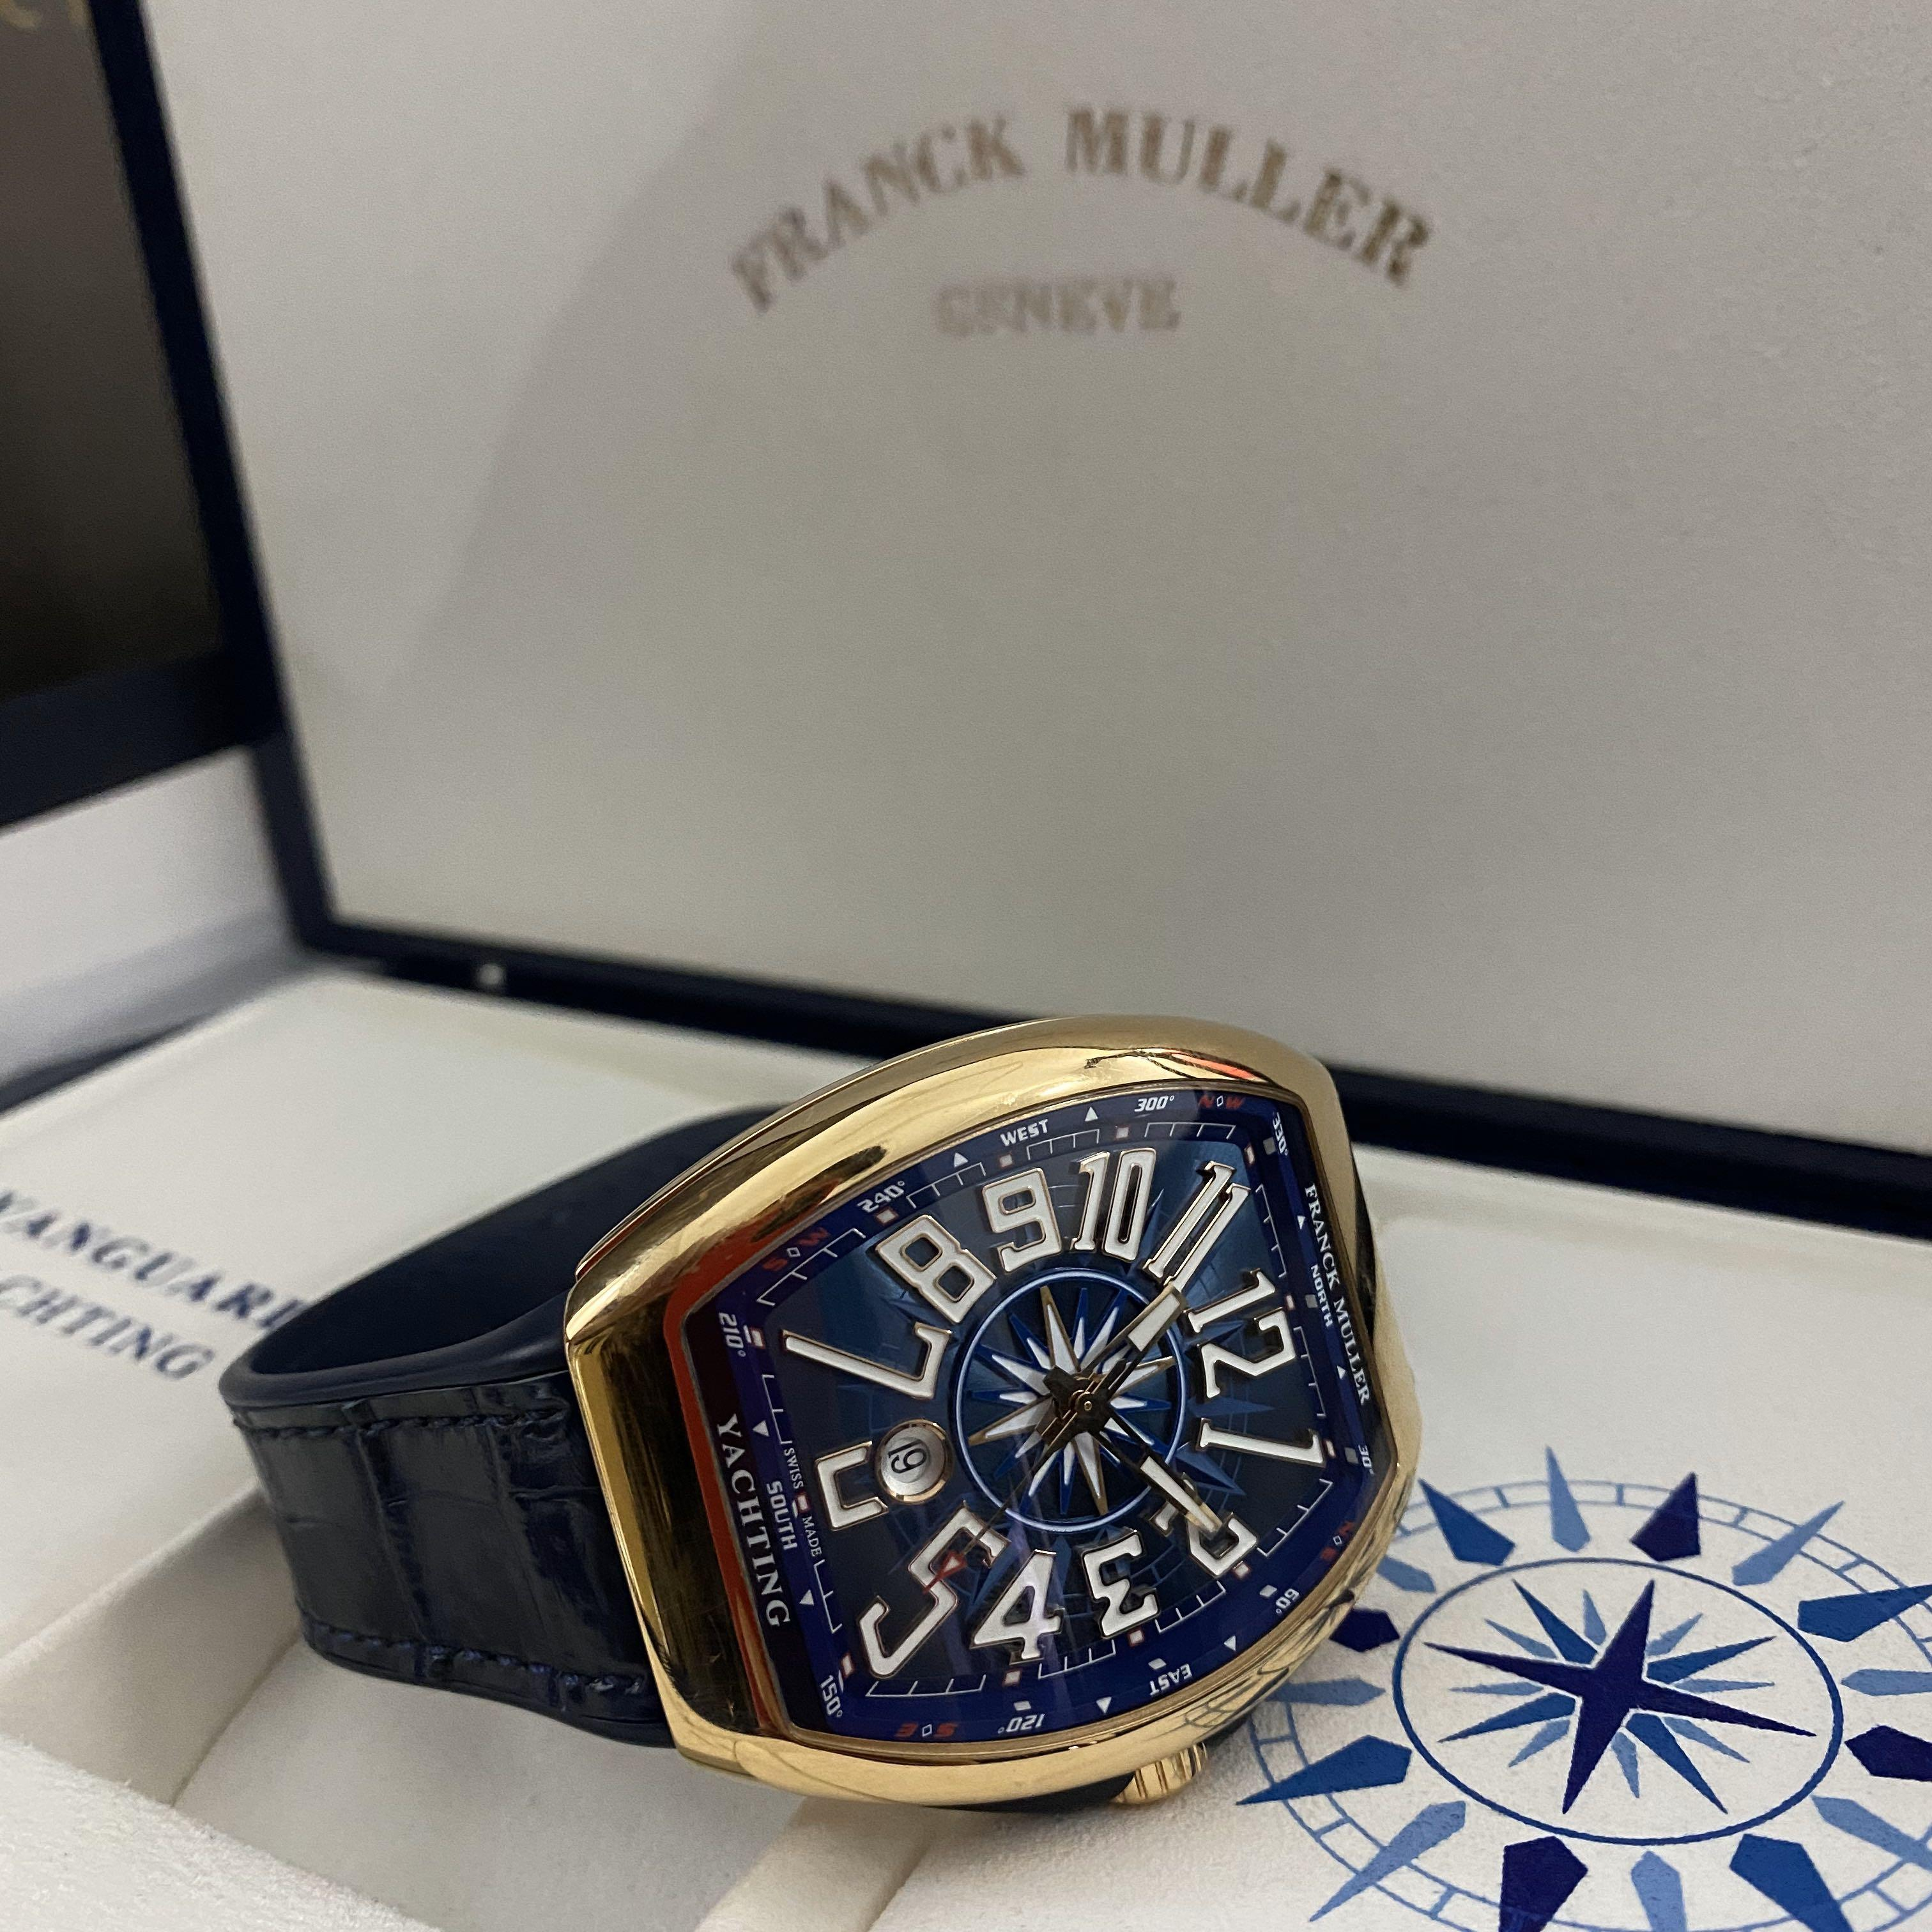 Pre Owned Franck Muller Vanguard Yatching V45 SC DT Blue Dial Automatic Everose Rose Gold Casing Leather